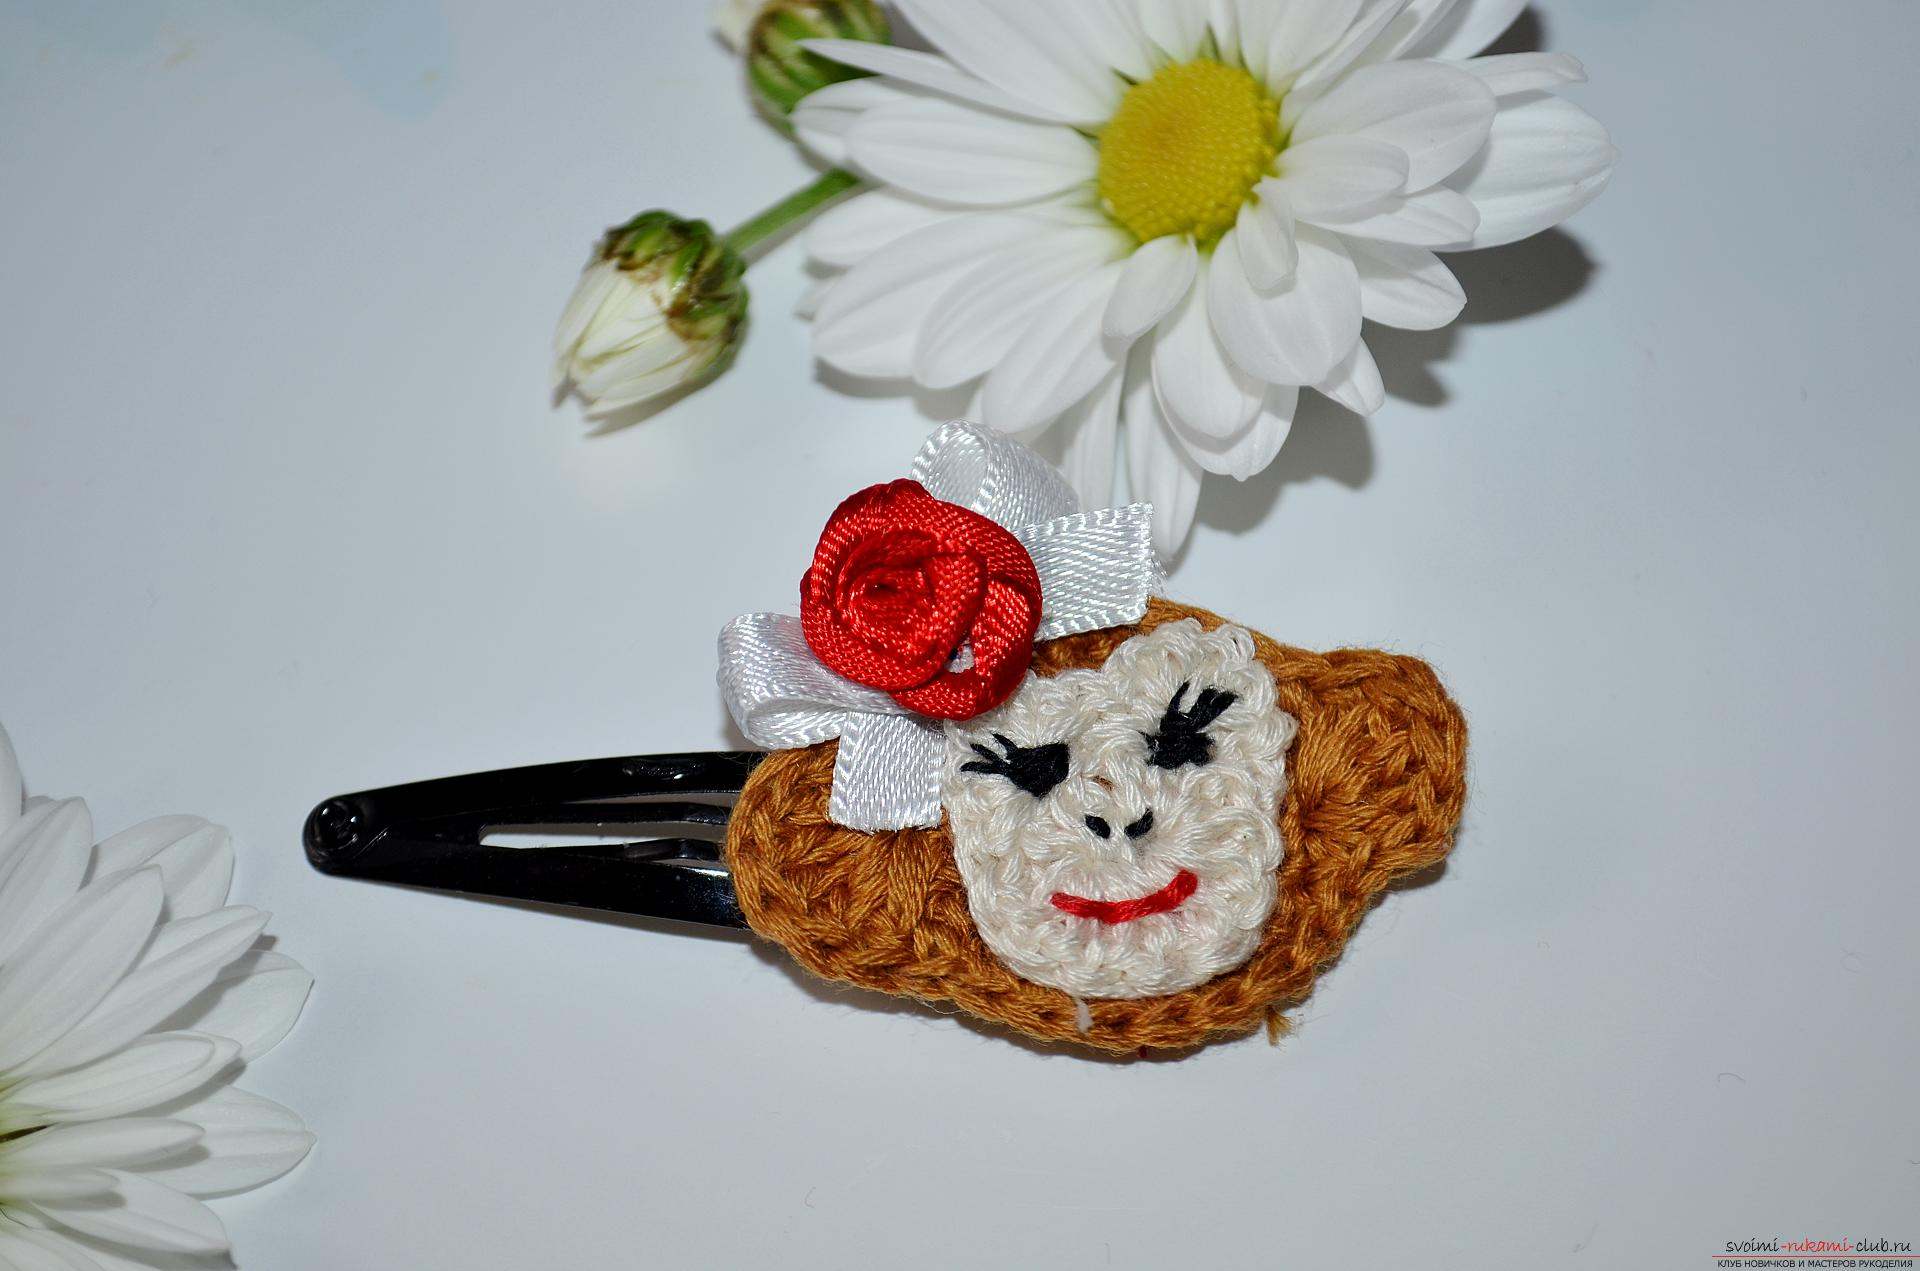 How to tie an original soft toy with your own hands Crochet crochet tutorial Marousi, in a fashionable dress